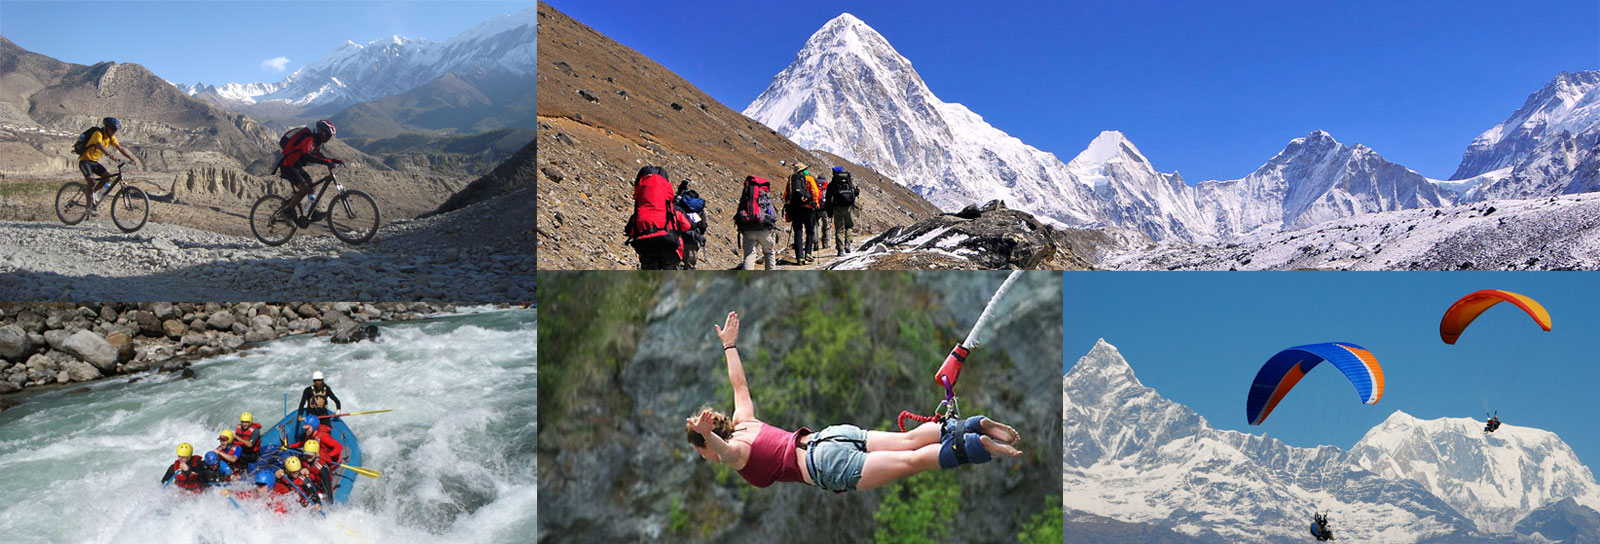 thesis on adventure tourism in nepal Get access to tourism in nepal essays only from anti essays listed results 1 - 30 get studying today and get the grades you want only at antiessayscom.